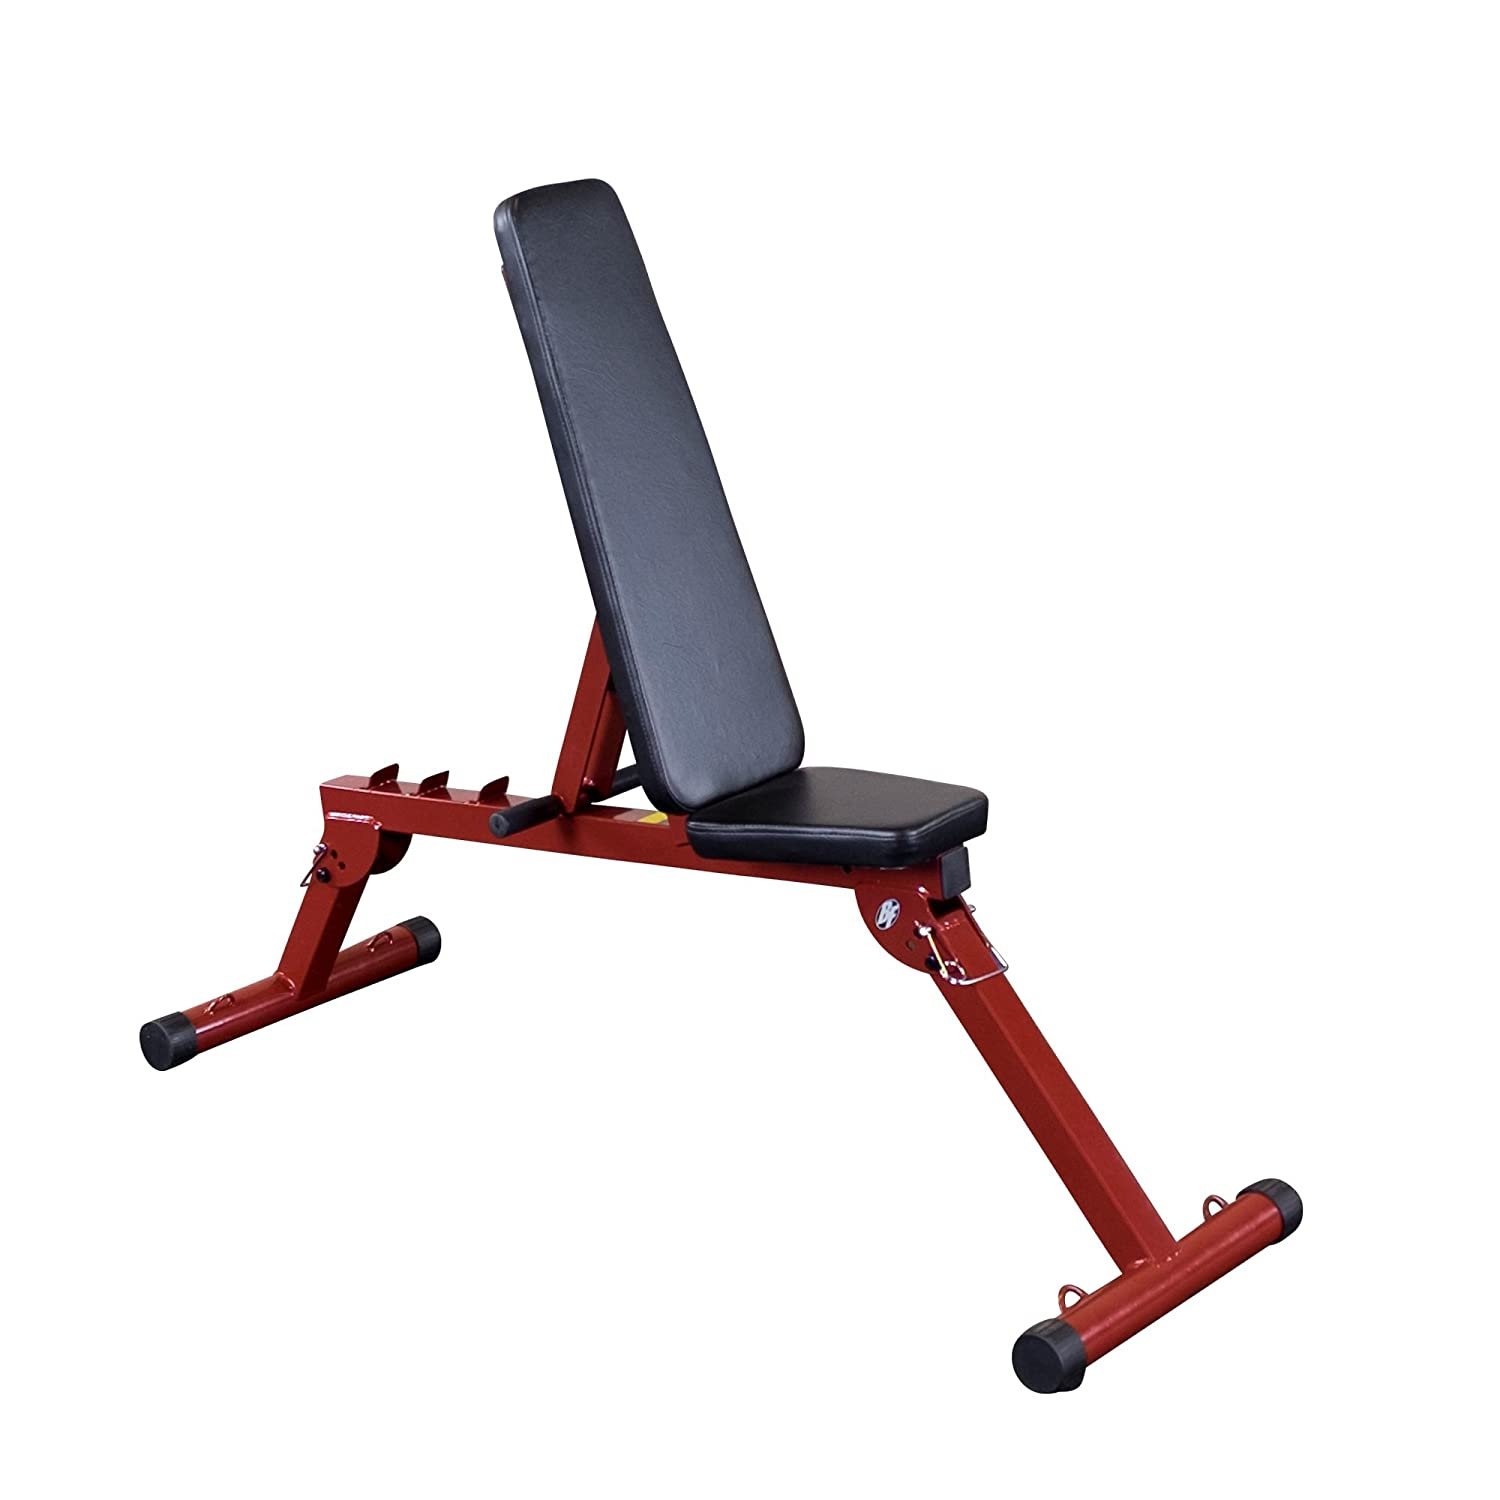 FID Adjustable Bench